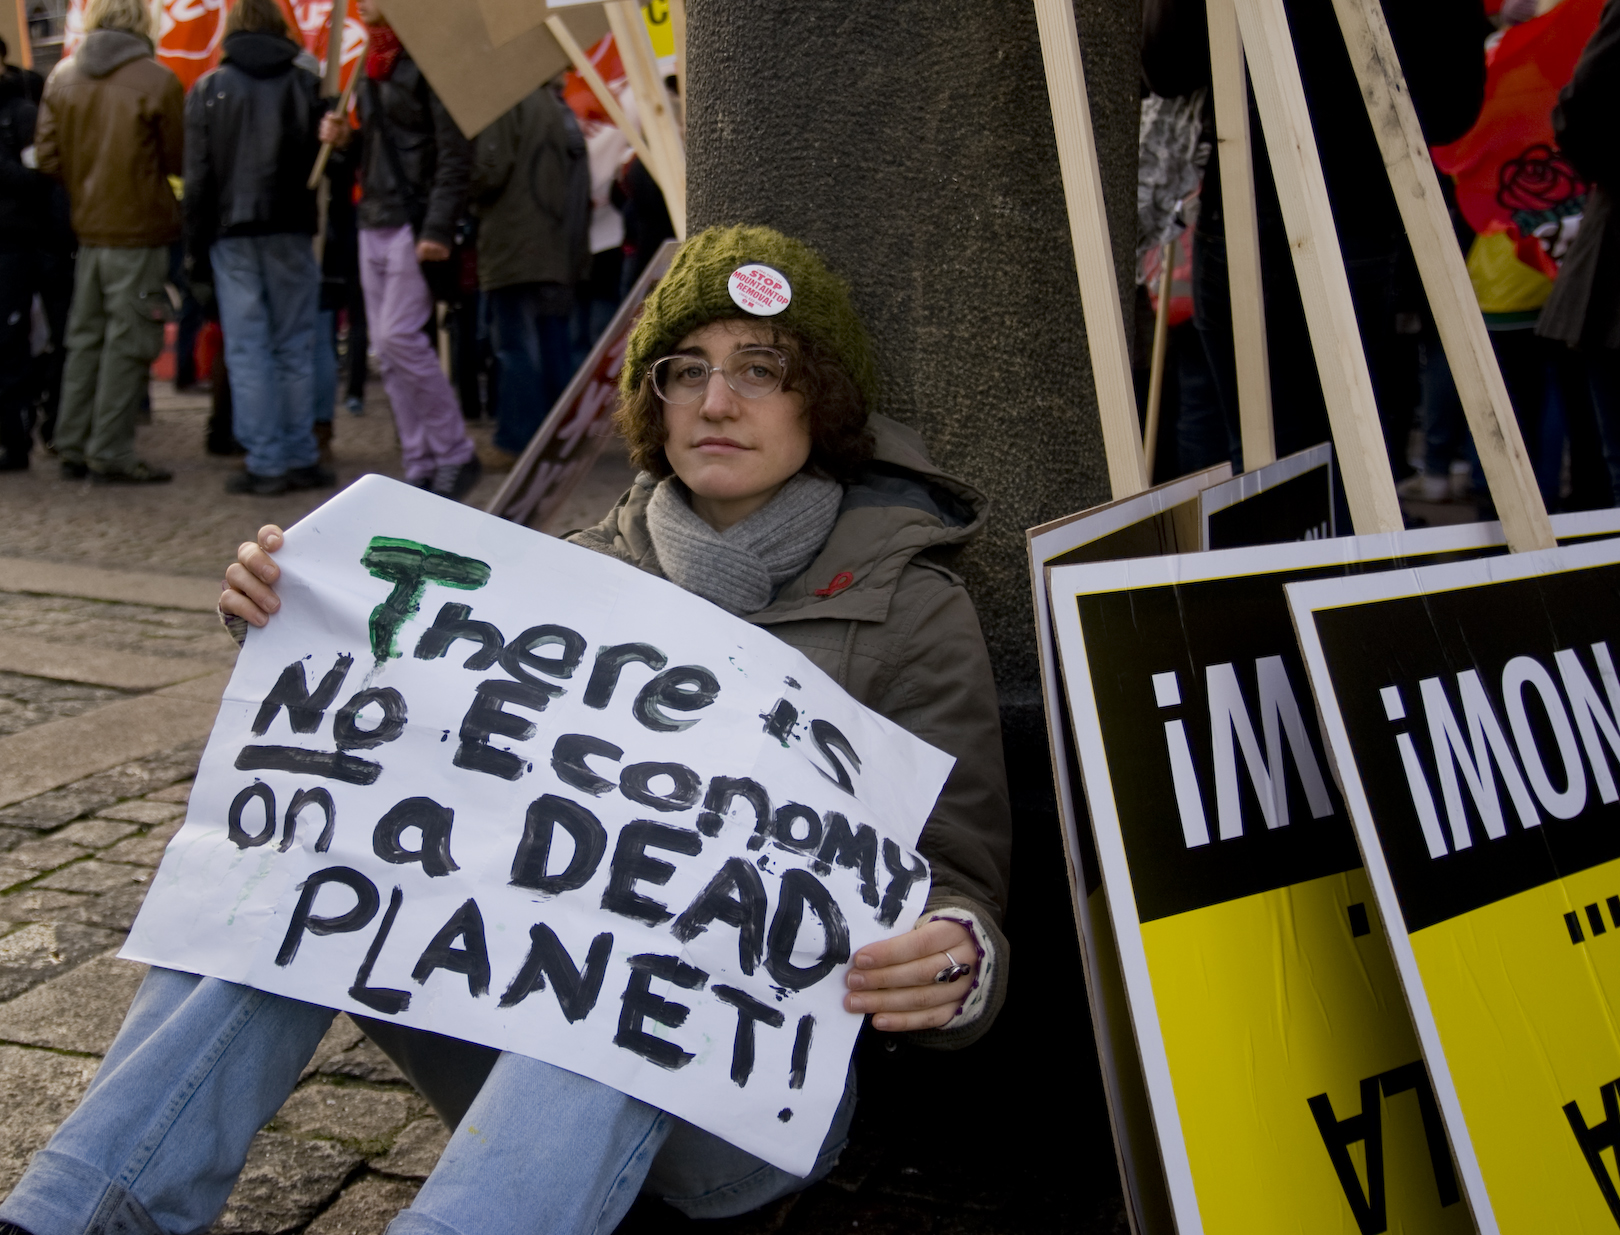 There is no economy on a dead planet